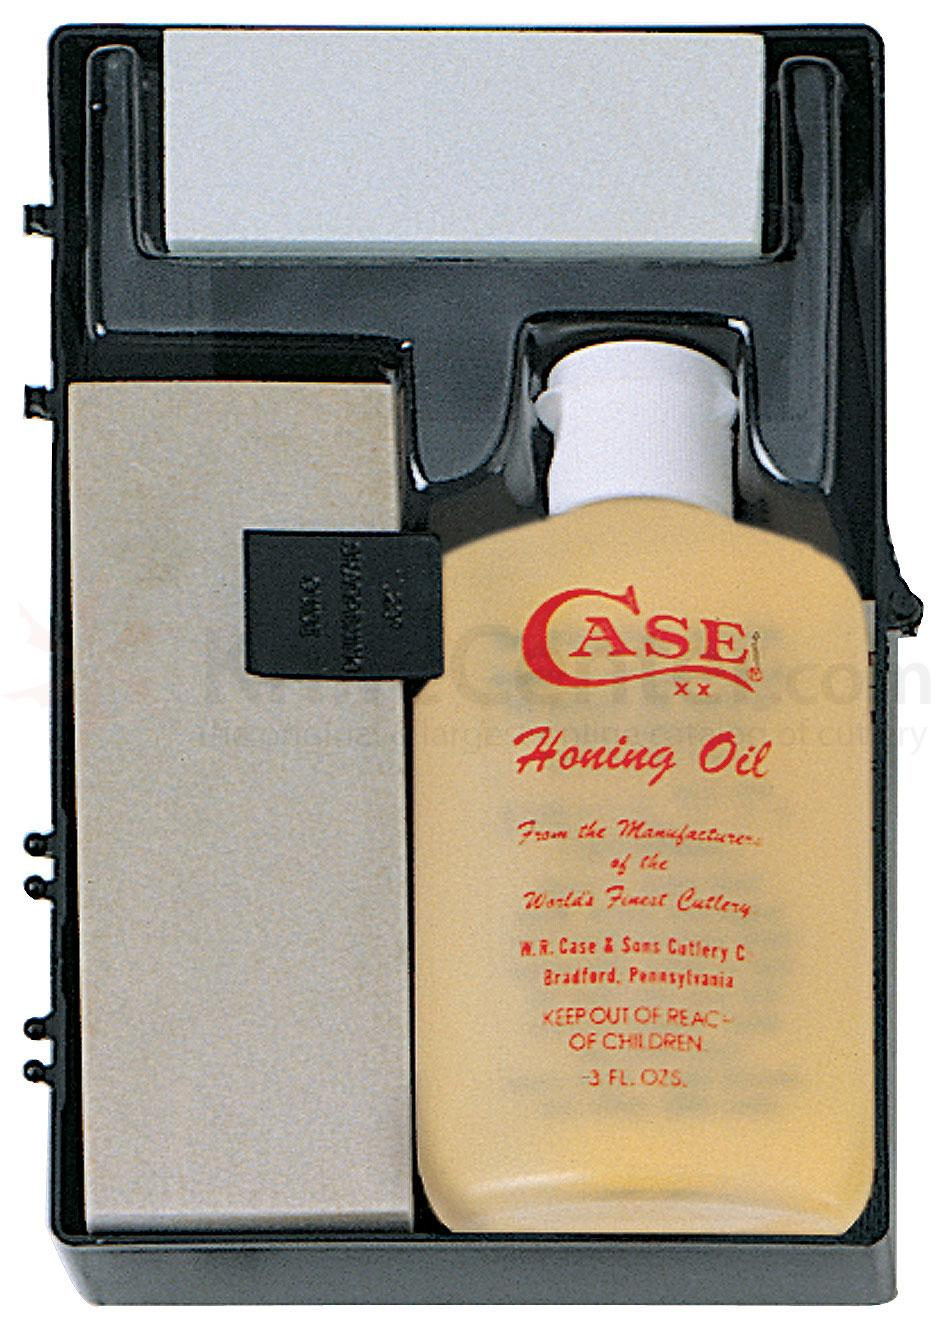 Case Sportsman's Honing Kit 924, 2 Arkansas Stones and Honing Oil